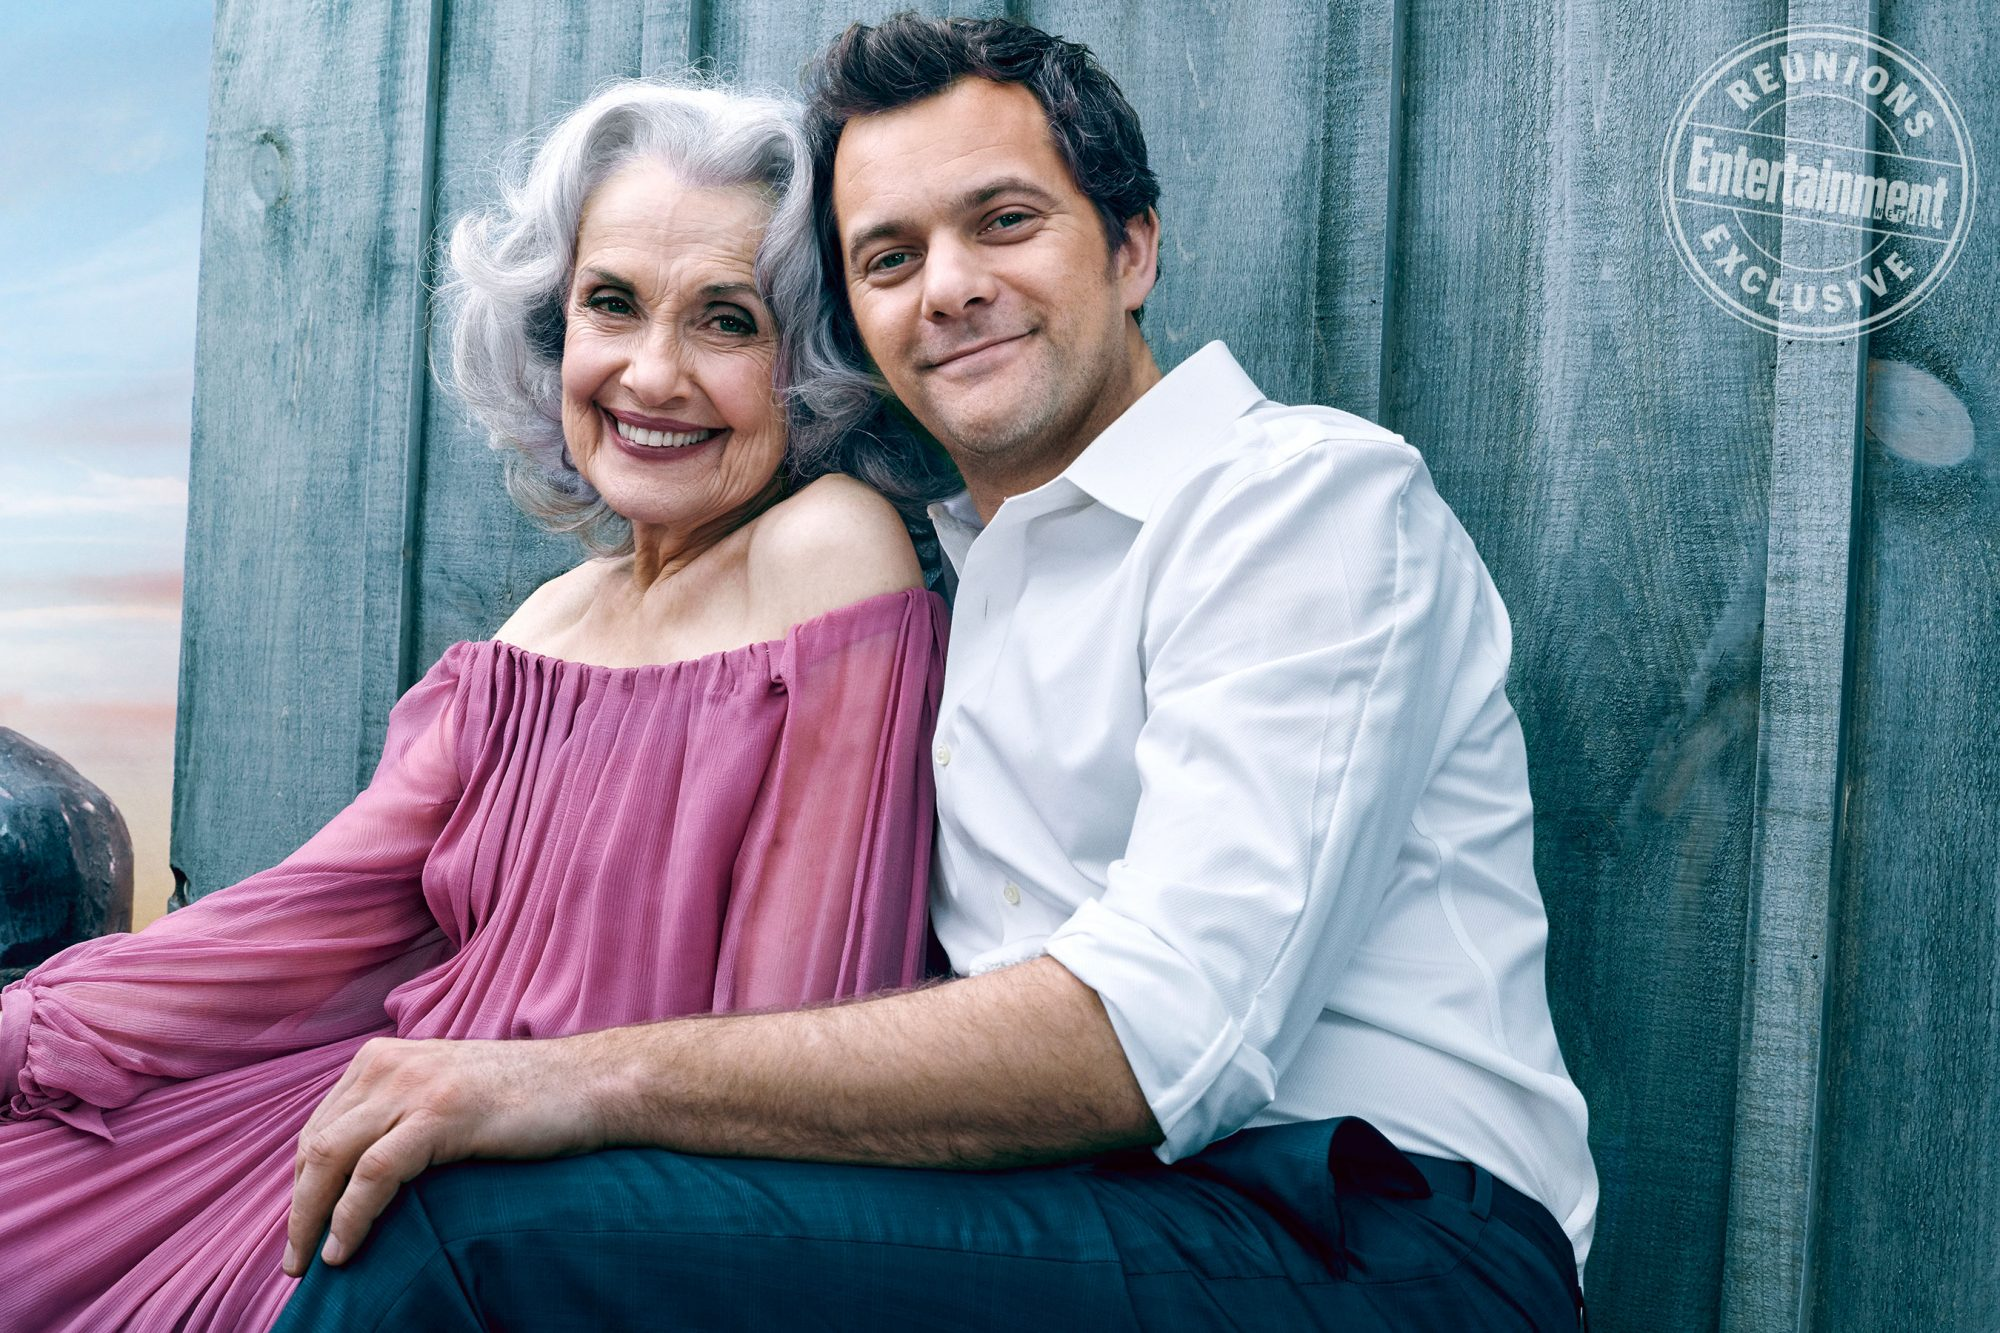 Mary Beth Peil (Evelyn 'Grams' Ryan) and Joshua Jackson (Pacey Witter)